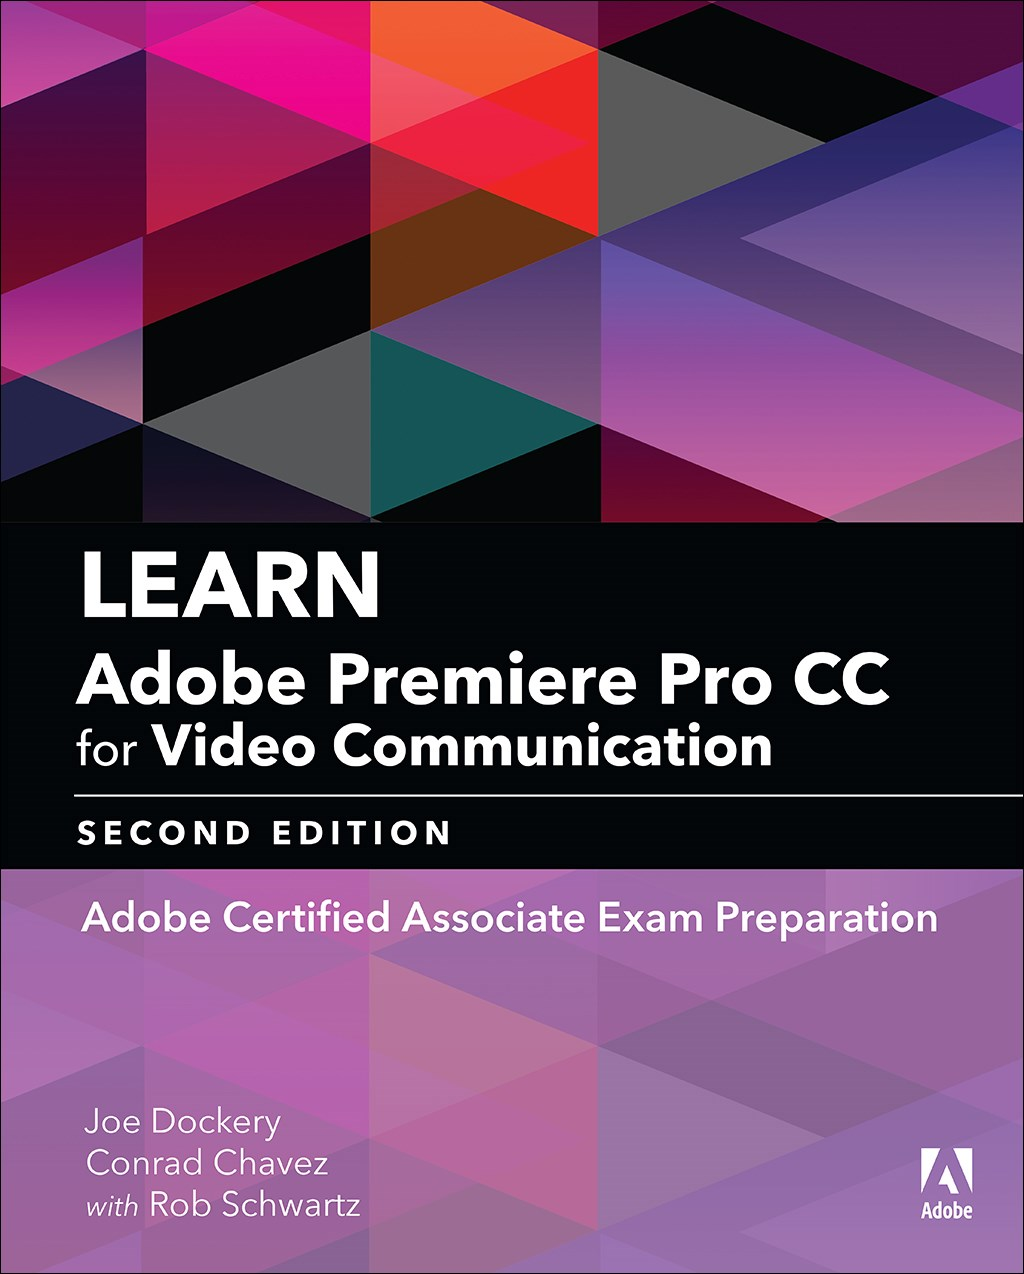 Learn Adobe Premiere Pro CC for Video Communication: Adobe Certified Associate Exam Preparation (Web Edition), 2nd Edition